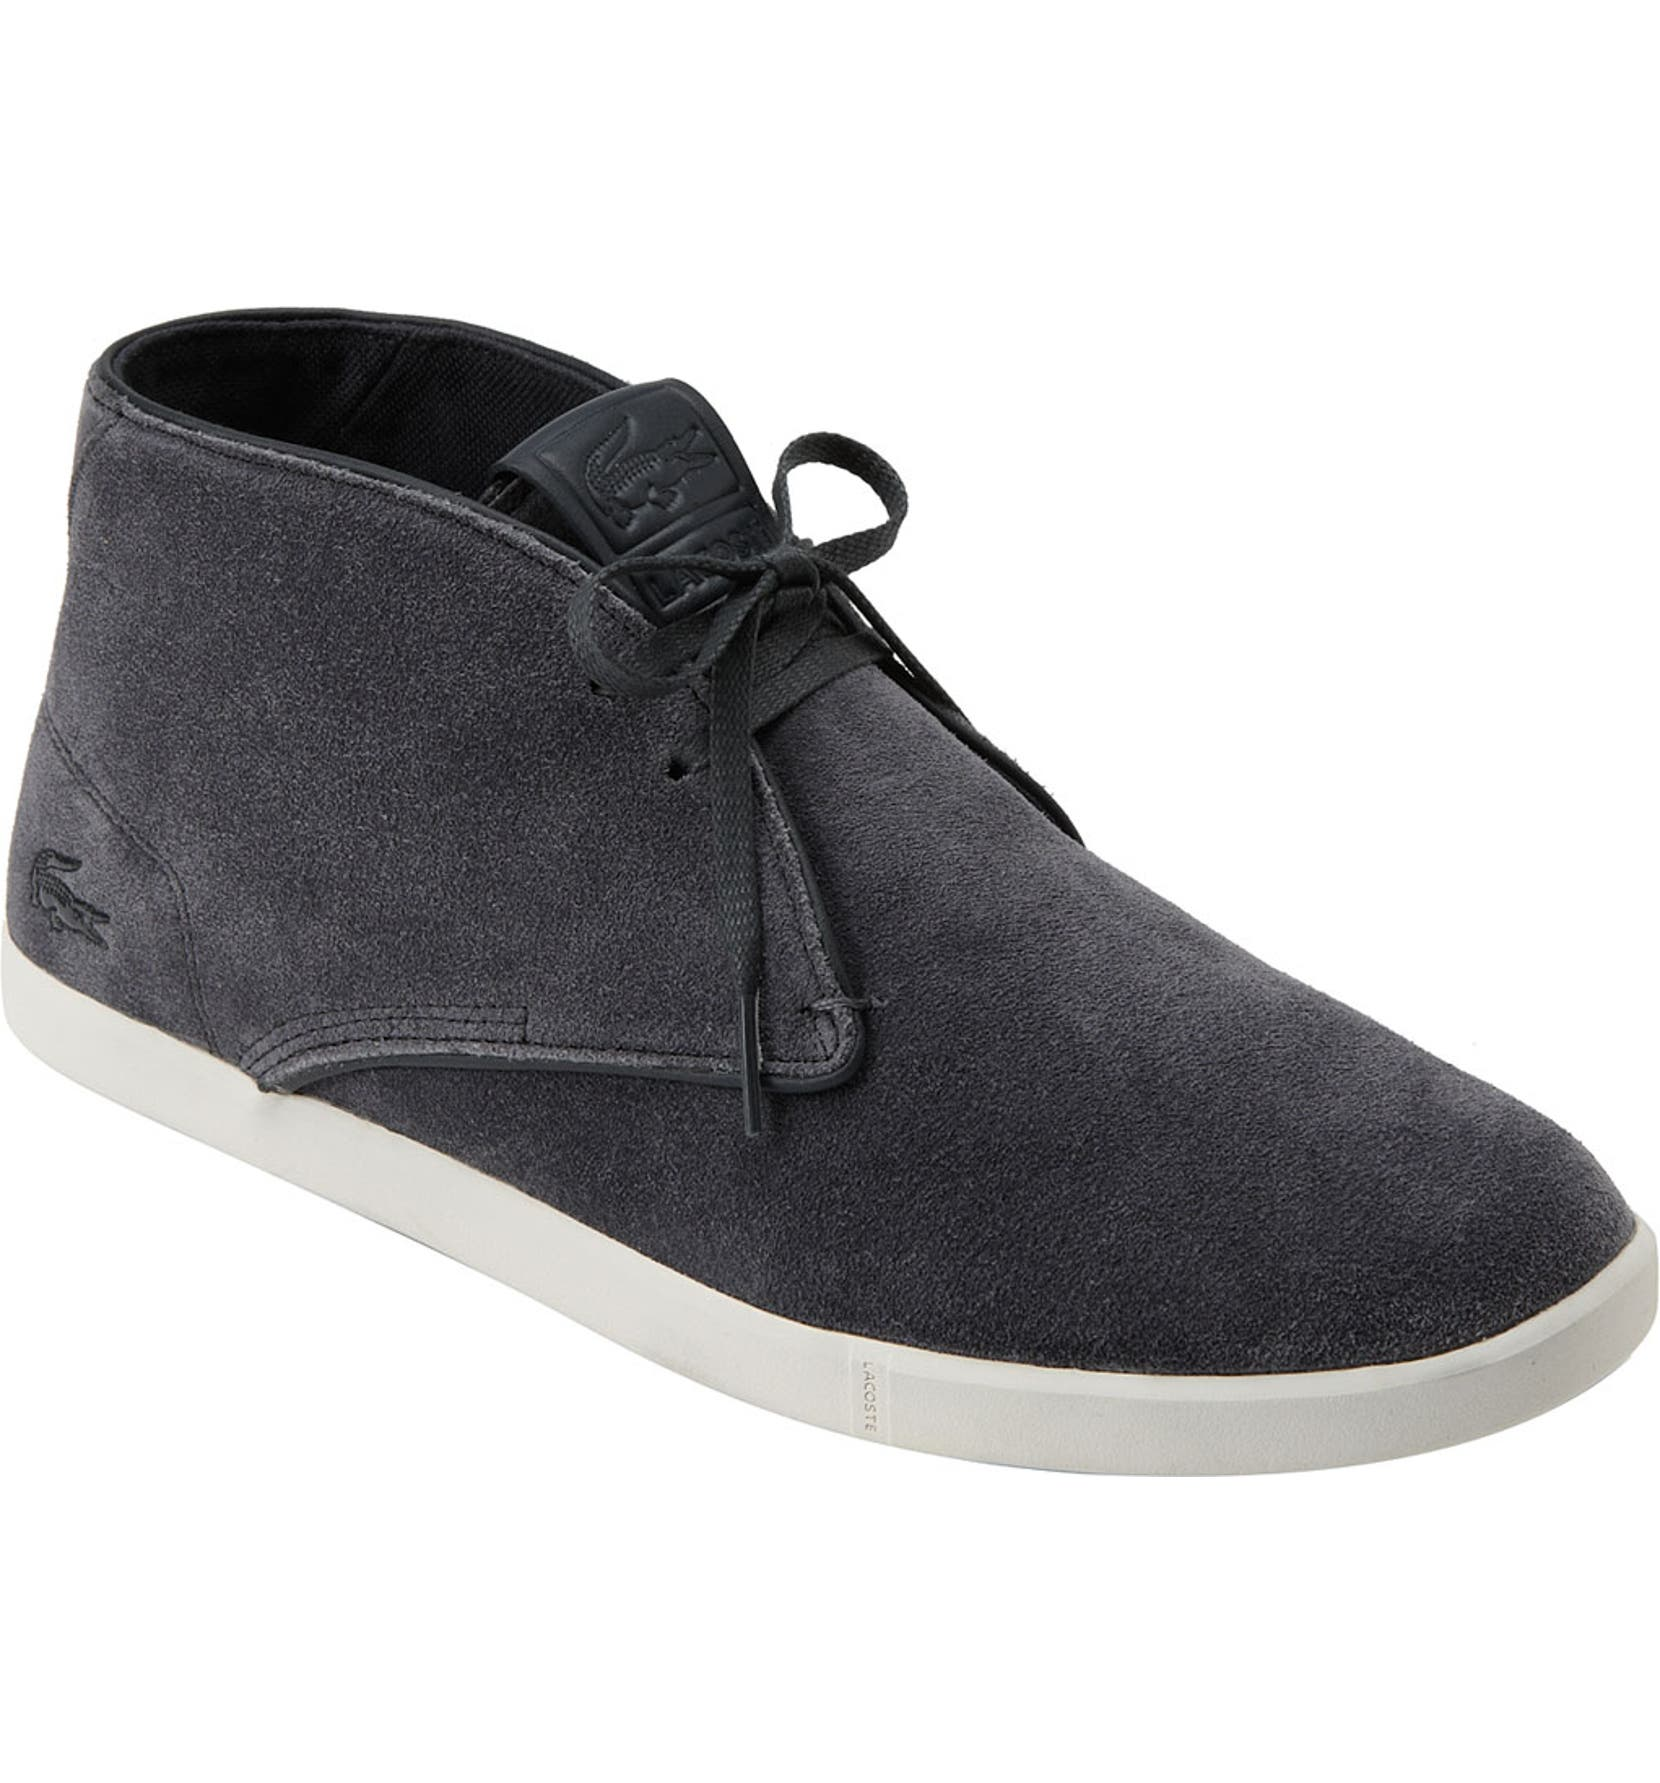 competitive price df429 7ee10 Men Shoe Lacoste Sneakers Trainers Black  Lacoste Arona Chukka Boot  Nordstrom . ...